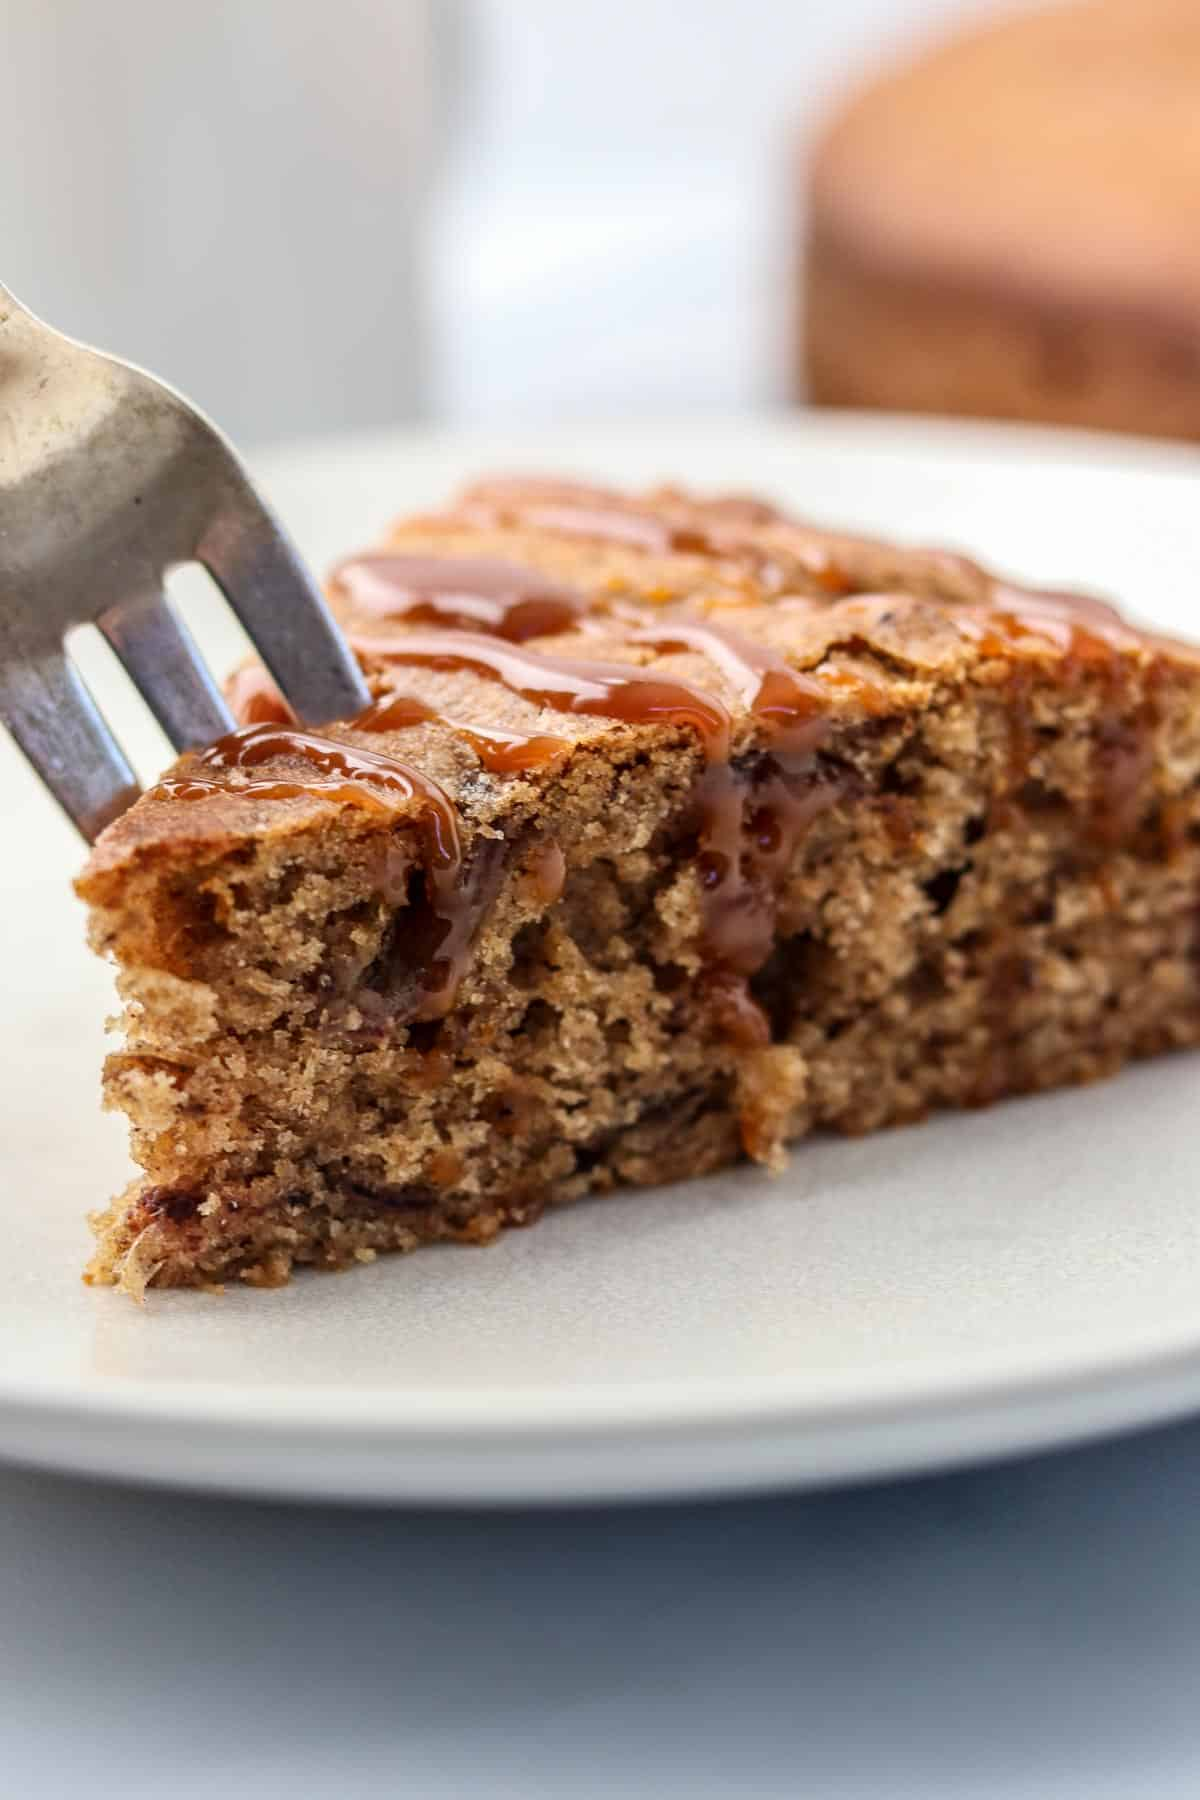 A close up of Spice Cake with Dates and Rye on a plate.